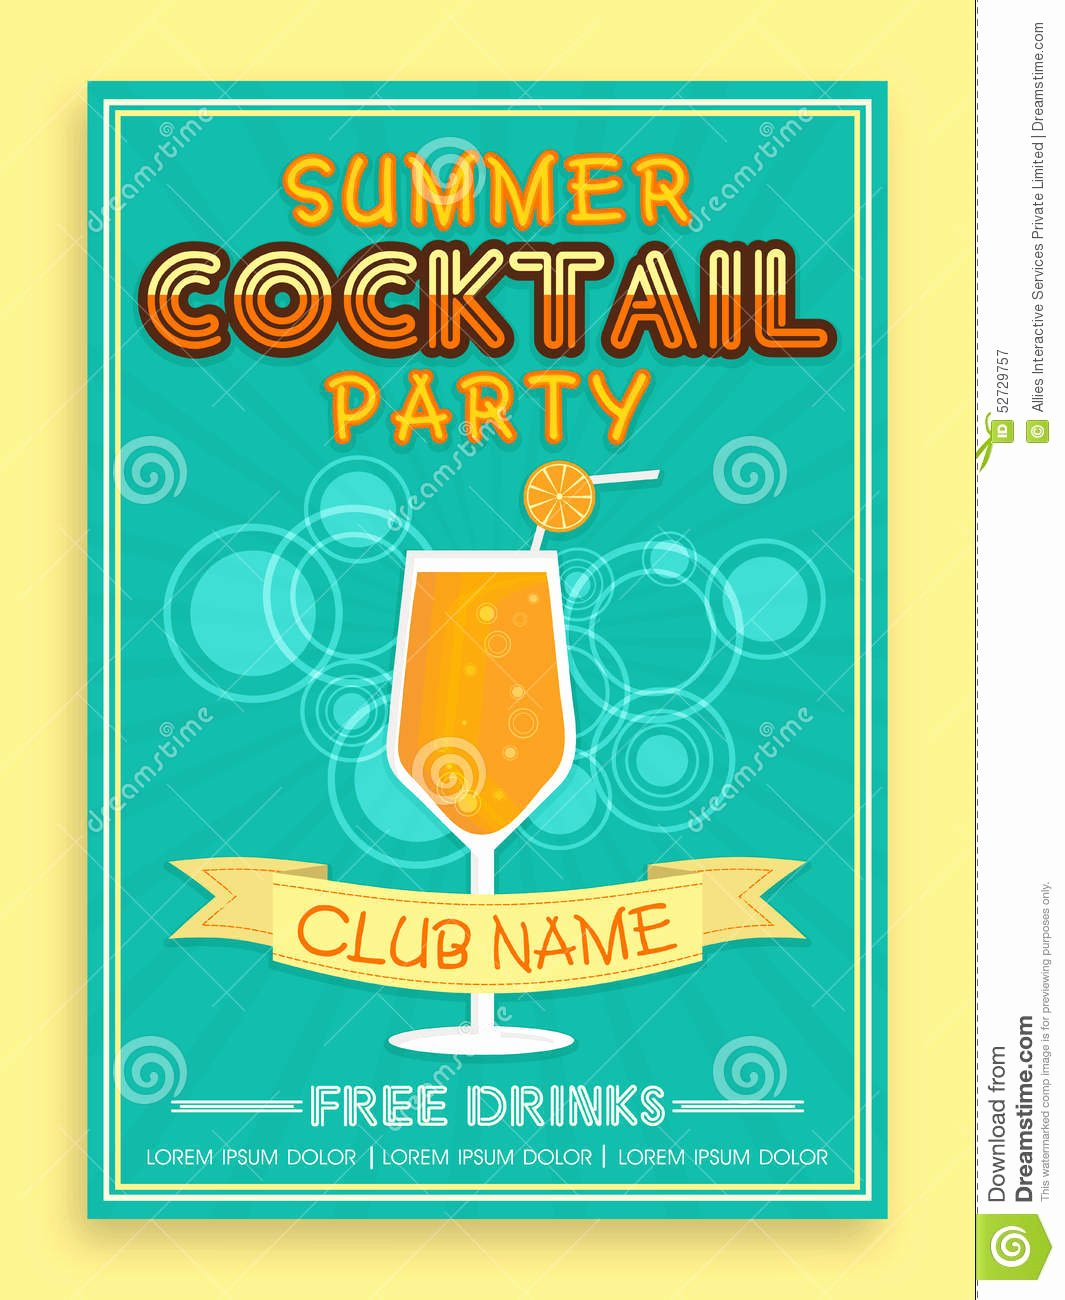 Template Brochure Flyer Design for Cocktail Party